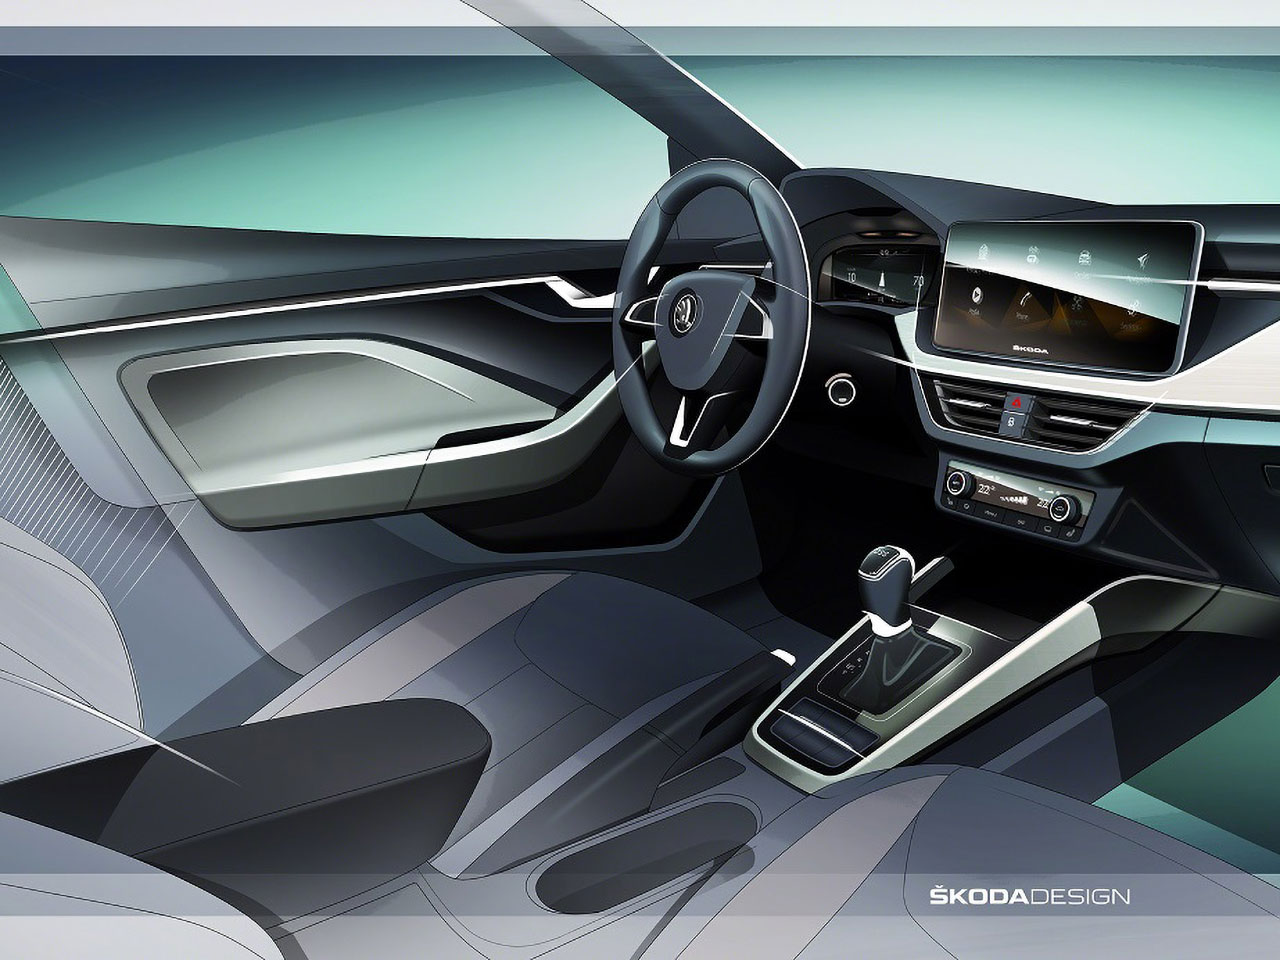 Skoda scala interior design sketch detail